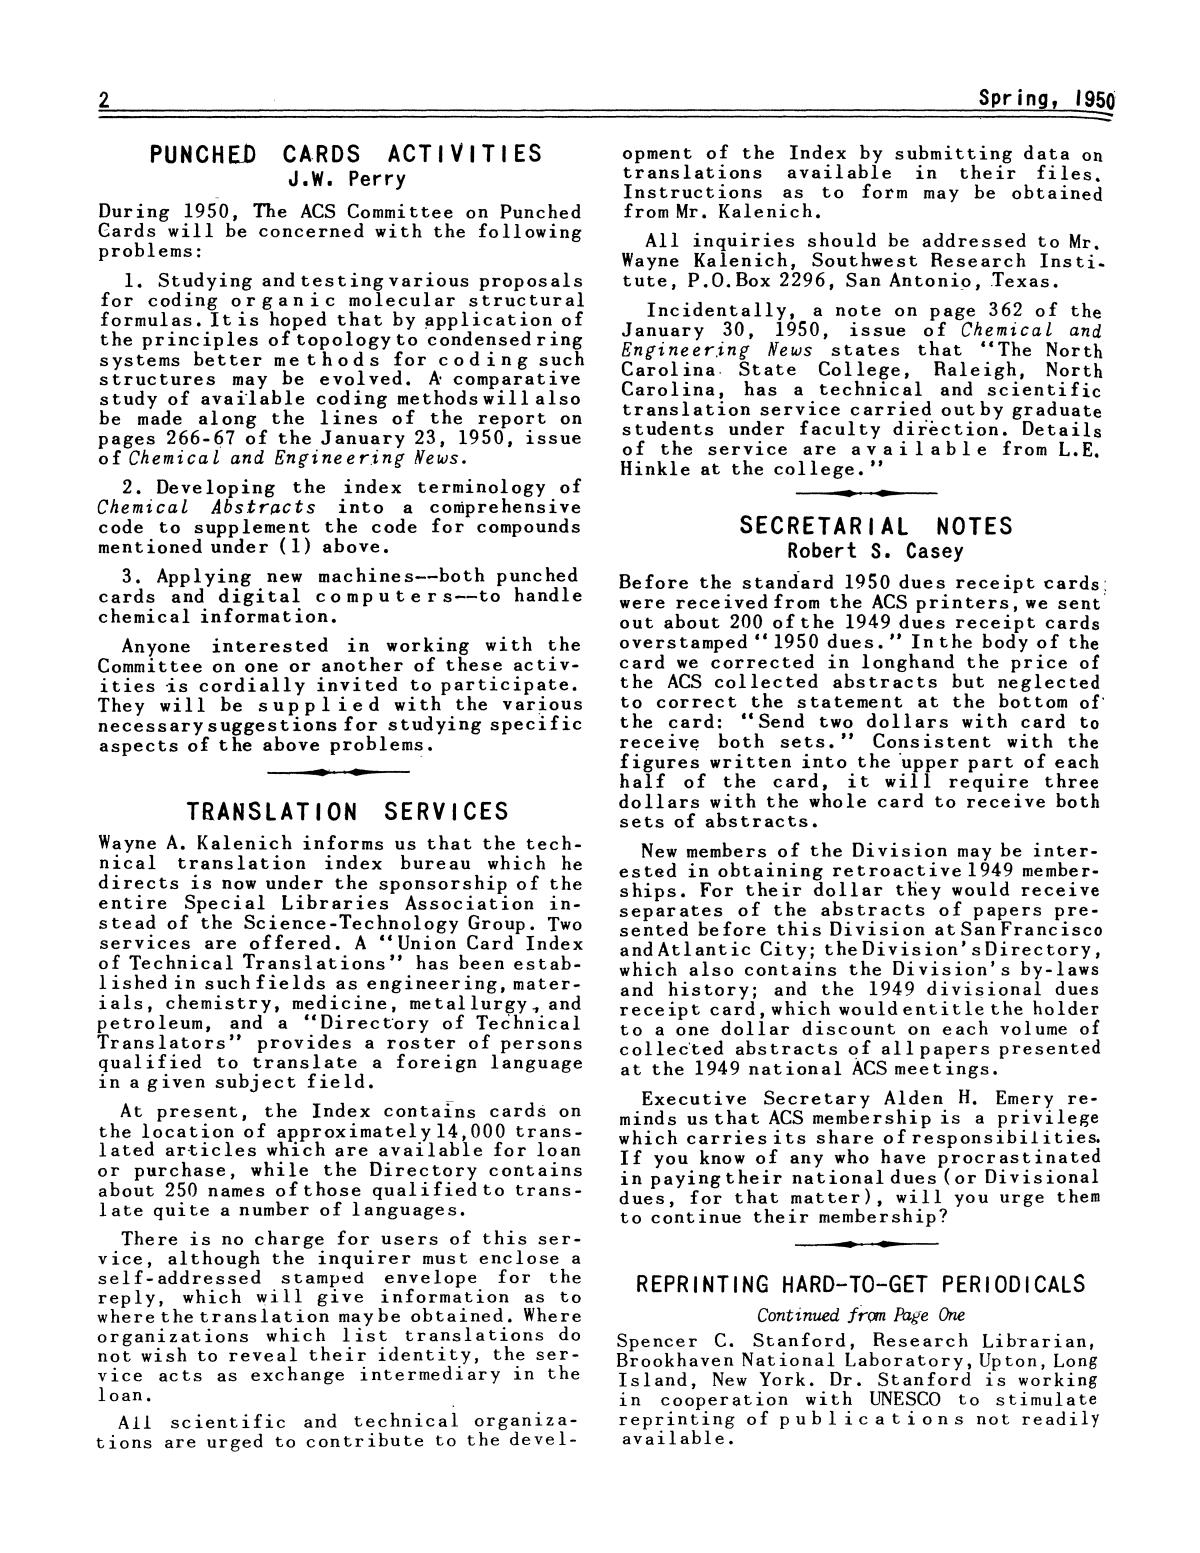 Chemical Literature, Volume 2, Number 1, Spring 1950                                                                                                      2